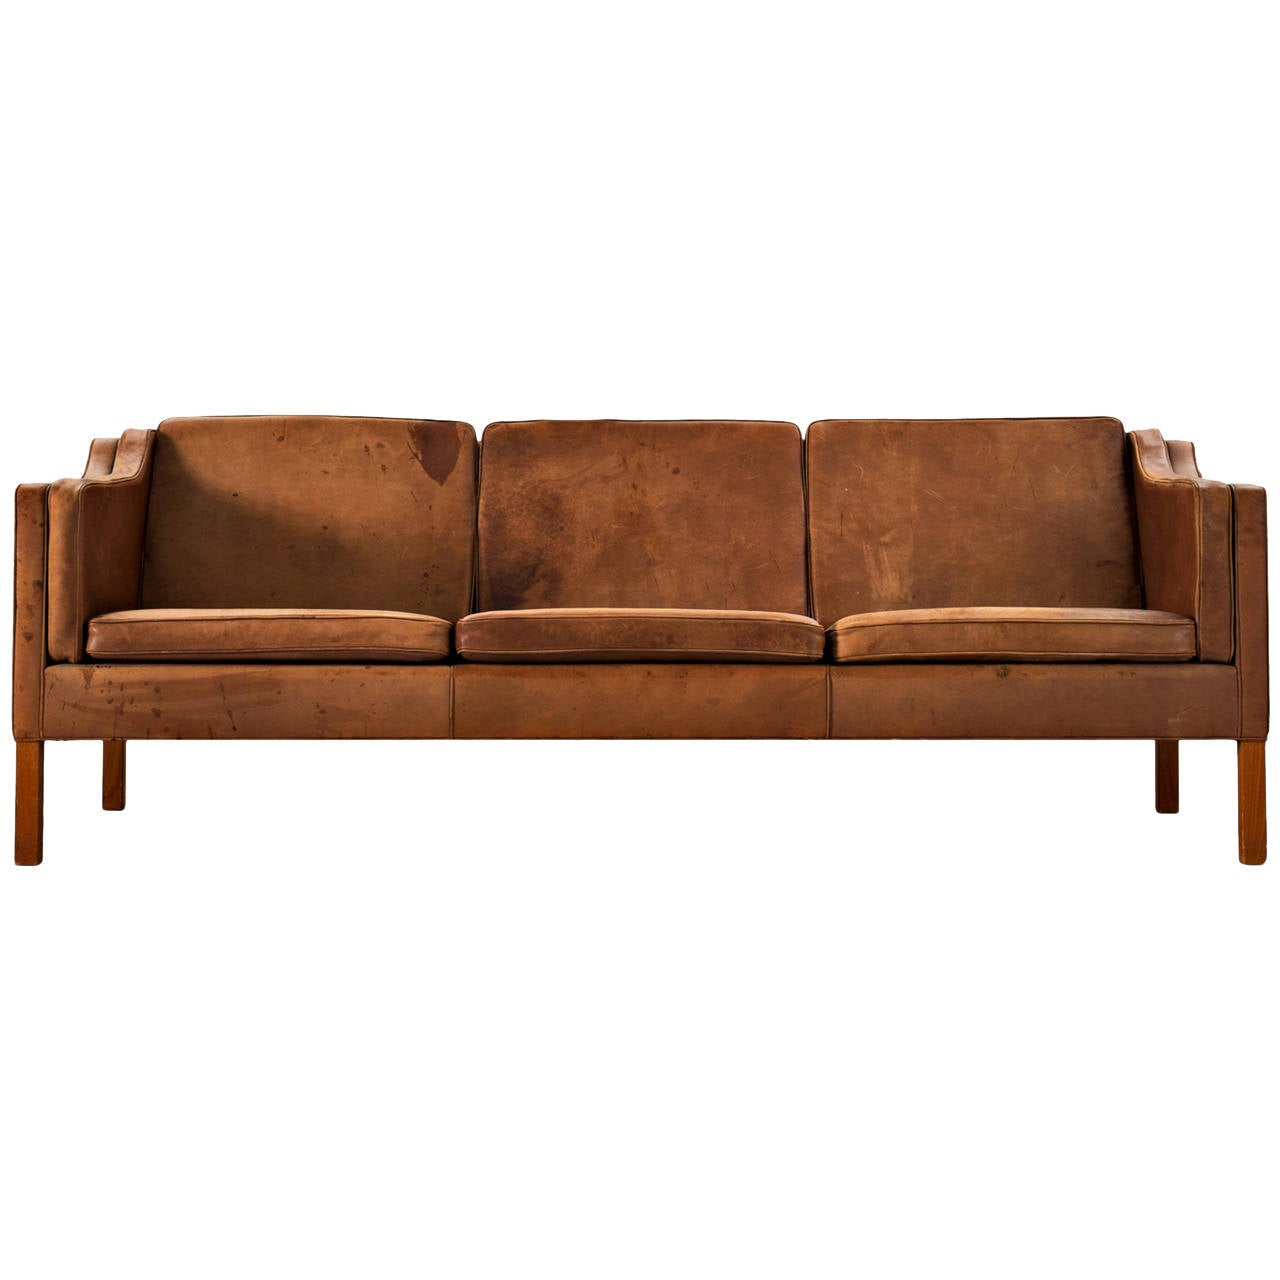 b rge mogensen three seat sofa in cognac leather at 1stdibs. Black Bedroom Furniture Sets. Home Design Ideas